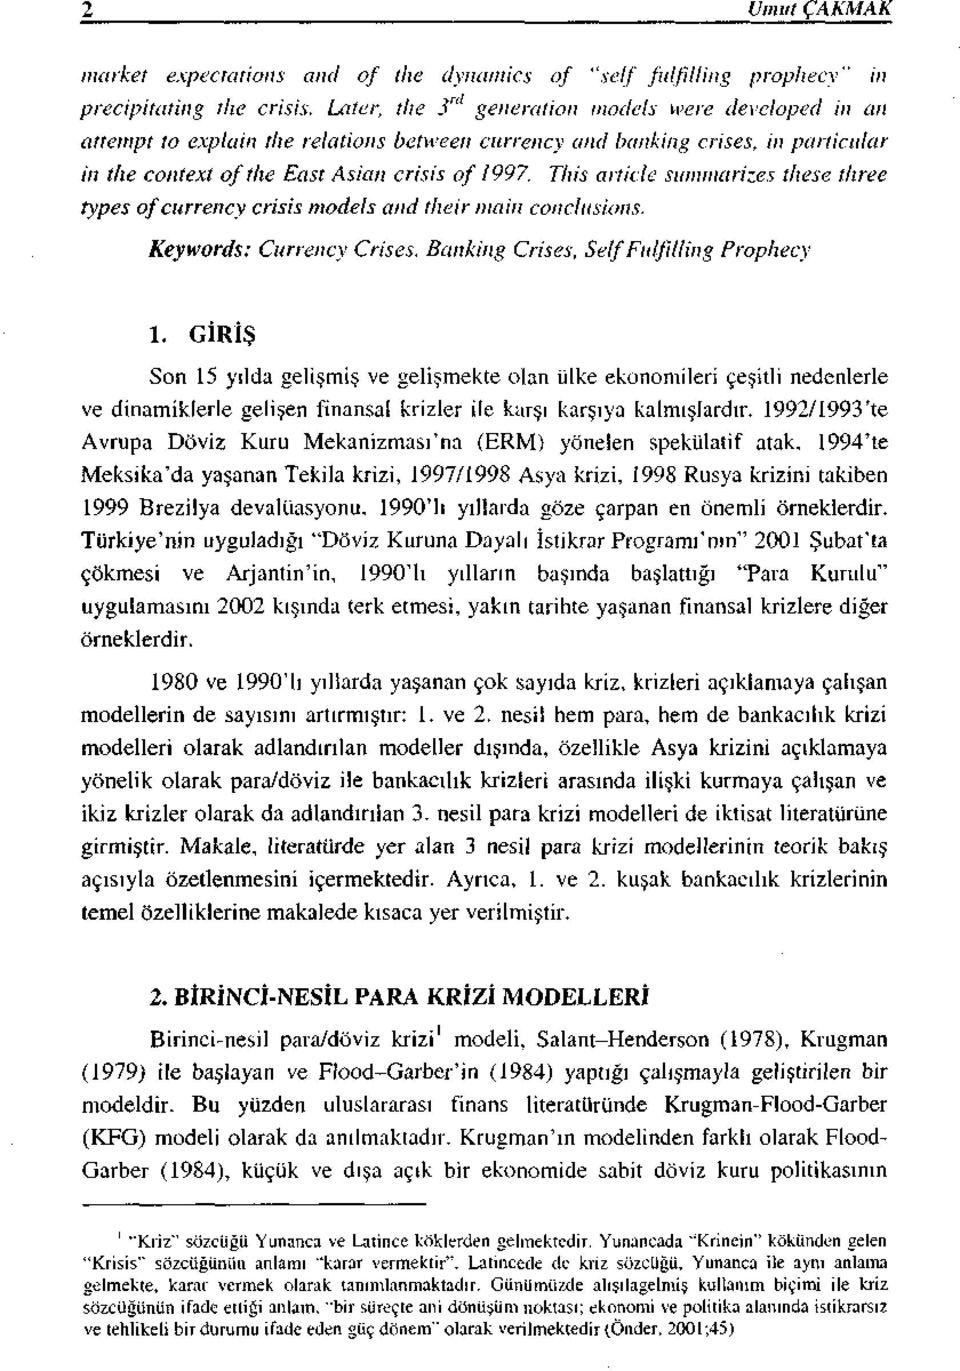 This artide sum111t1ri::.es ılıesc three types of currency erisis model s and tlıeir mai11 conclusions. Keywords: Currency Crises. Banking Crises, Seif Fıdjilfing Proplıecy 1.